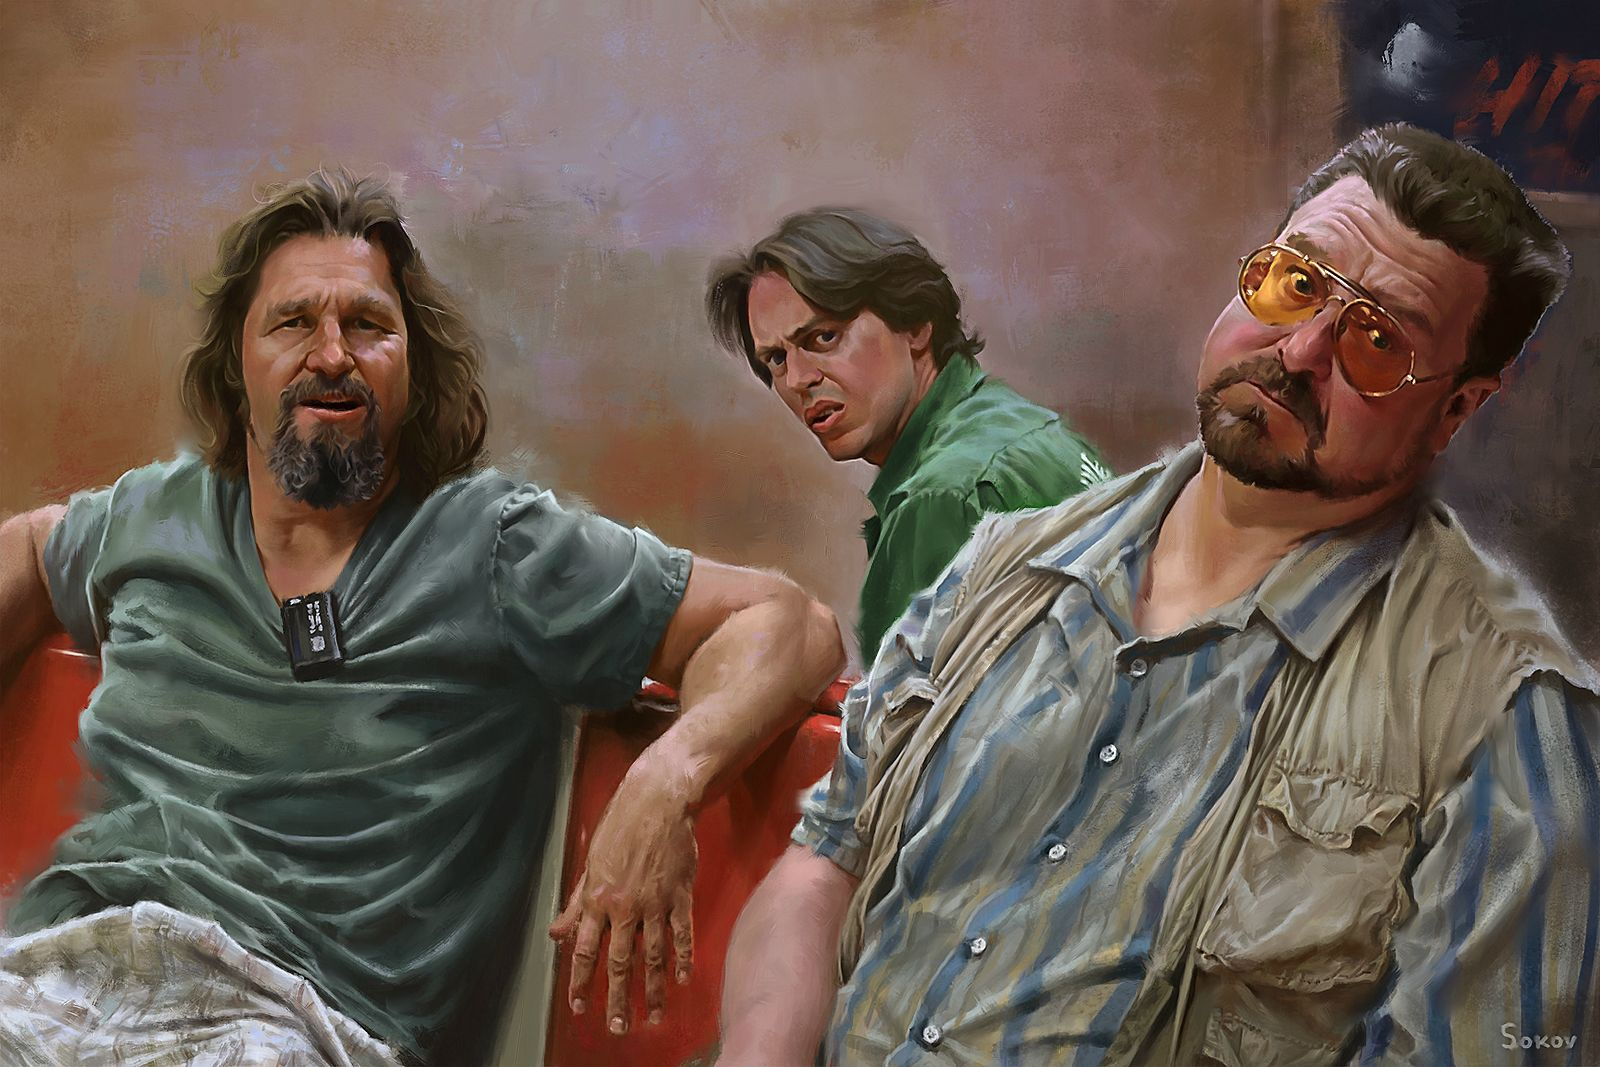 Staff picks: Get out there and hang with the Dude